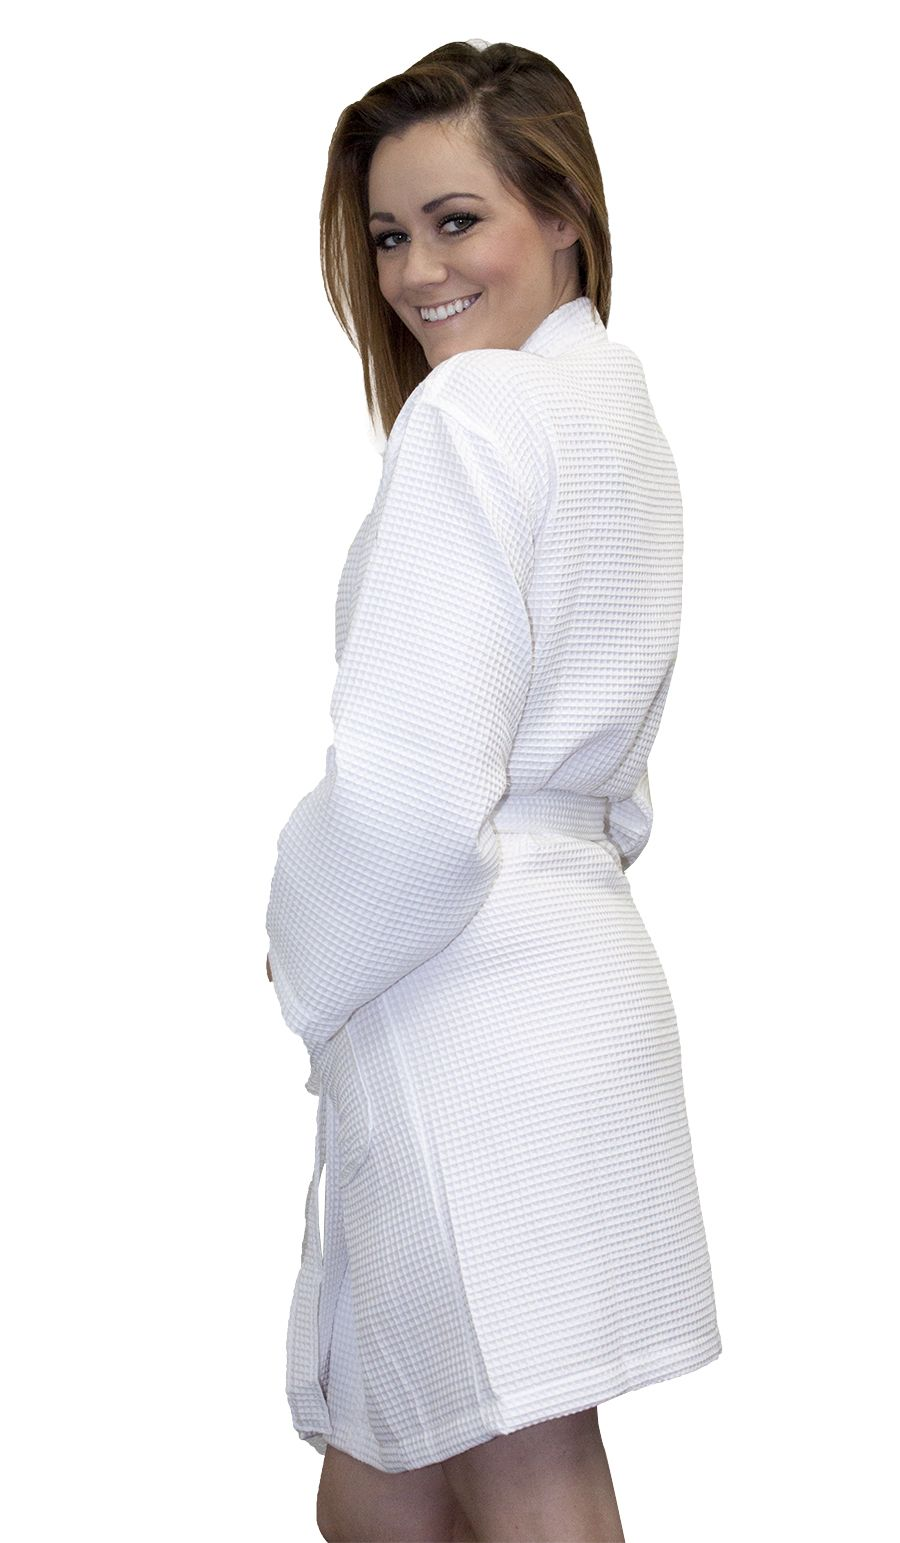 c0c90cc40a Cottonage s White Short Spa Robe has two patch pockets and made of 60%  cotton   40% polyester waffle weave fabric